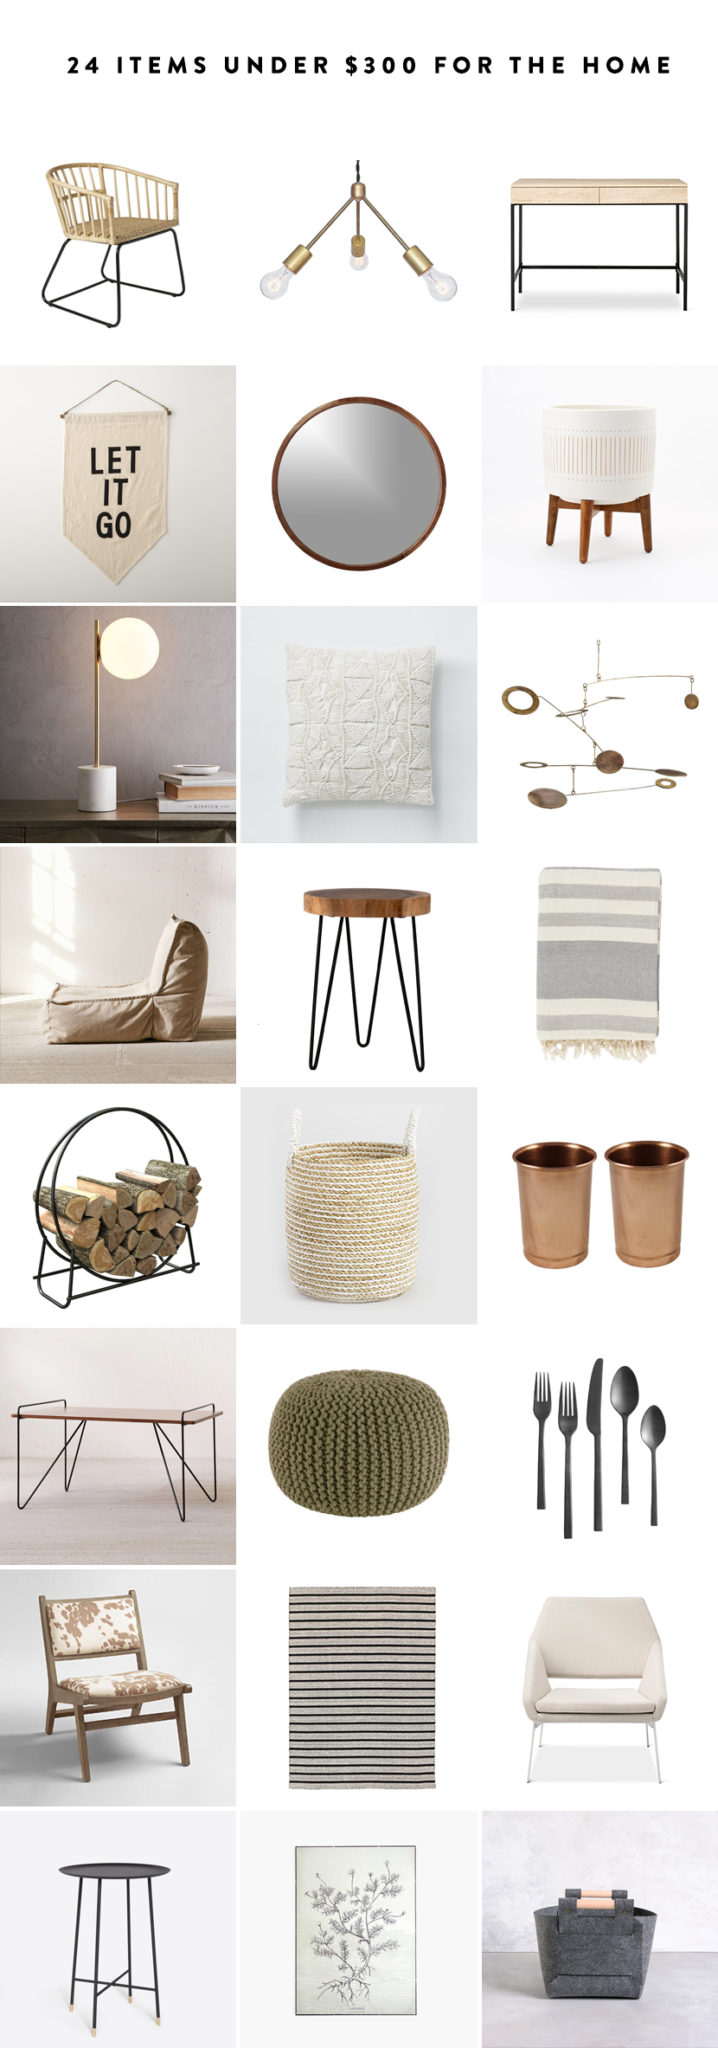 24 Items for Your Home Under $300 to freshen up your space this new year  |  The Fresh Exchange